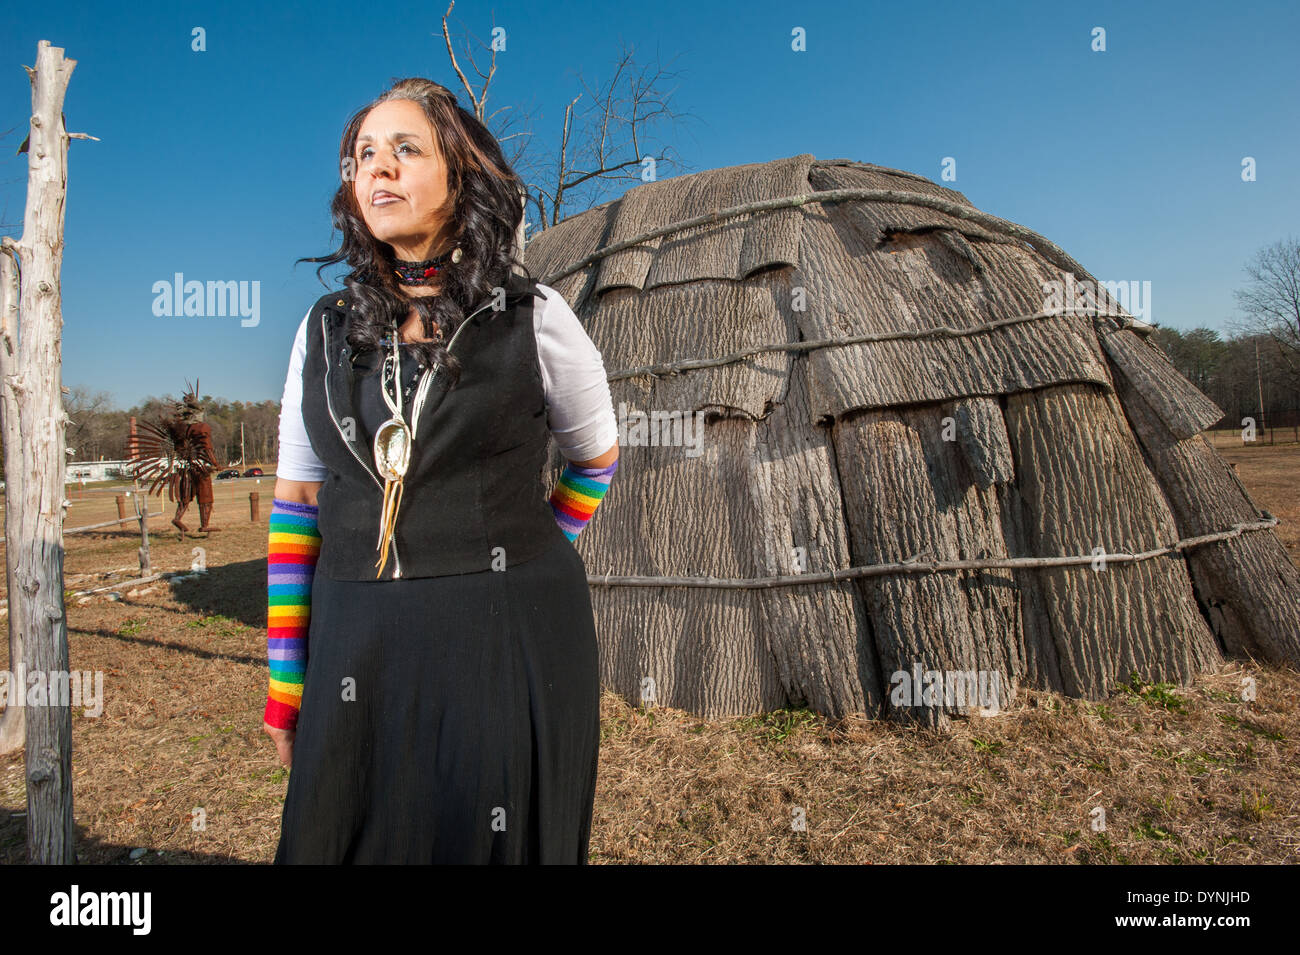 Piscataway Native American woman standing outside near wigwam at the Piscataway indian cultural center in Waldorf MD - Stock Image